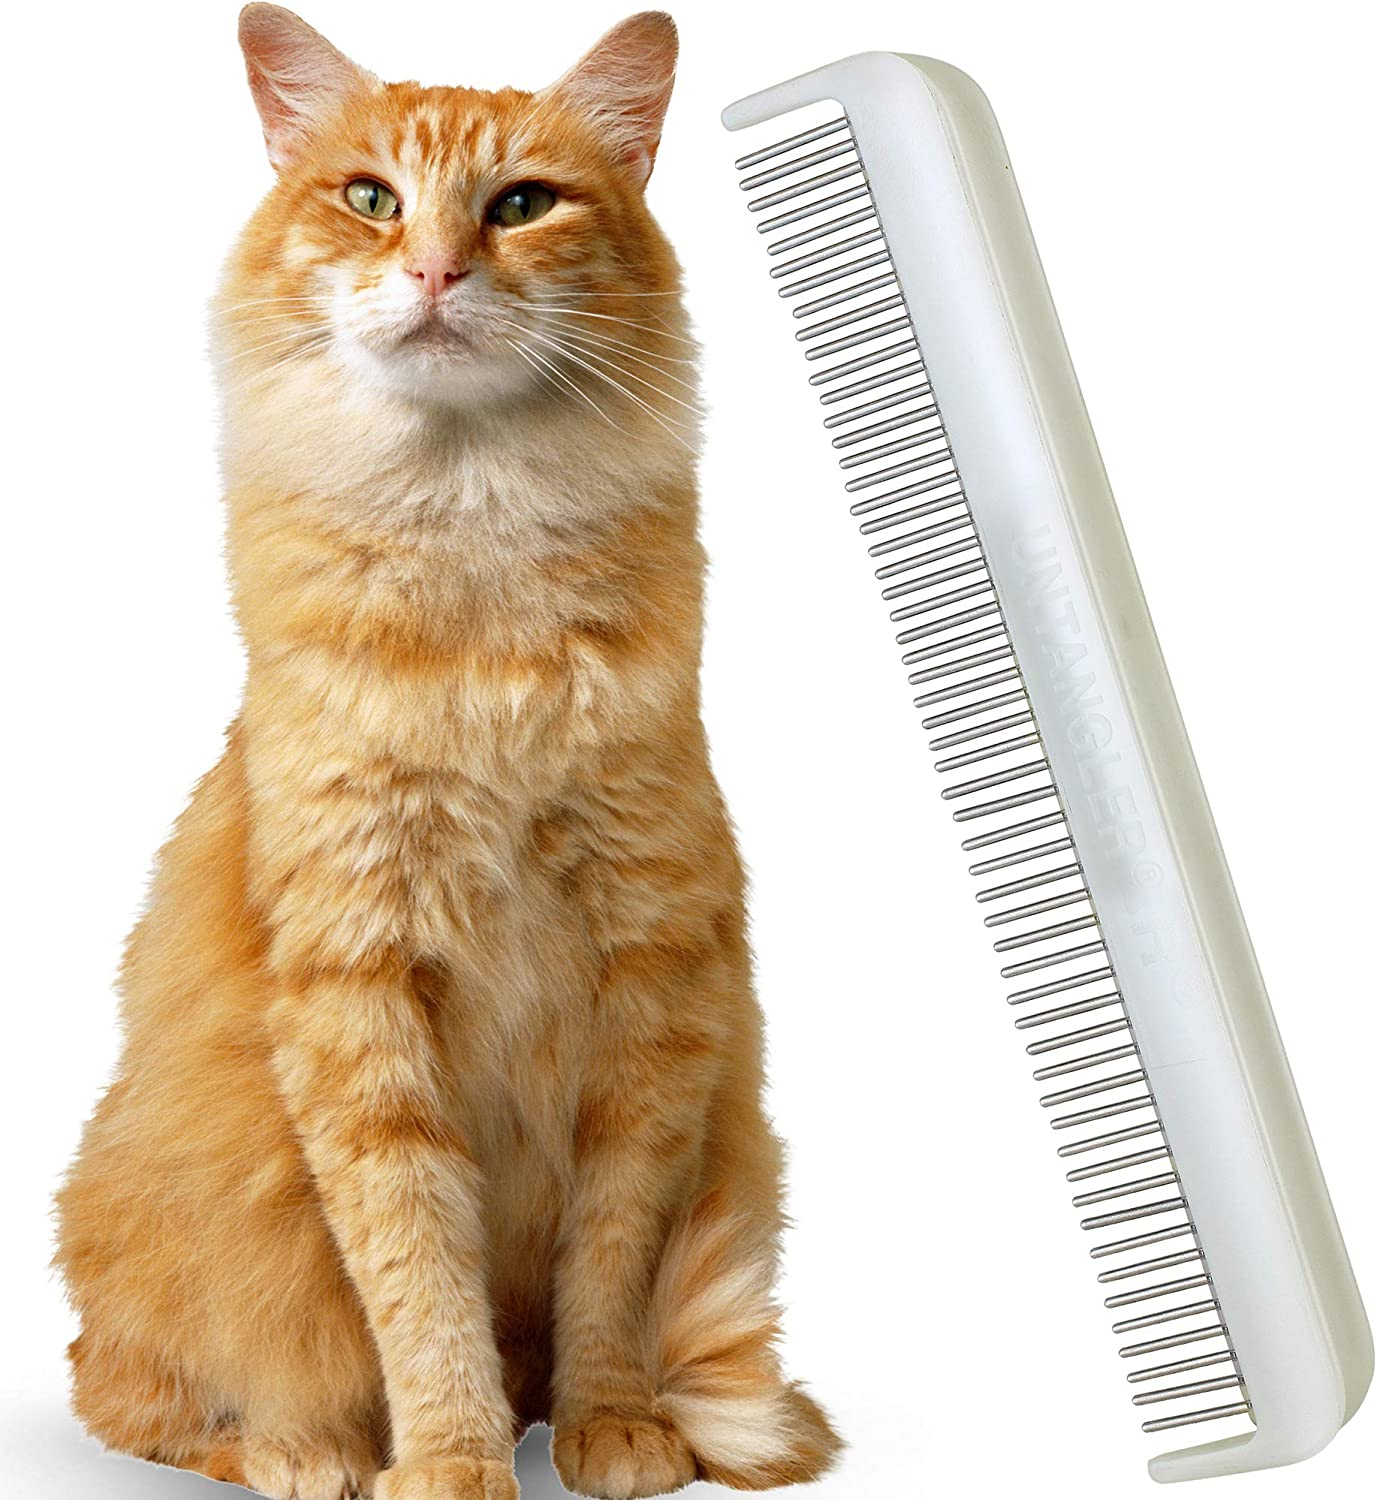 Clears mats Gently and Easily 5 has Ultra fine Spaced Teeth; 7 Dual-Spaced Teeth Cat Comb with Silky Smooth Rotating Teeth